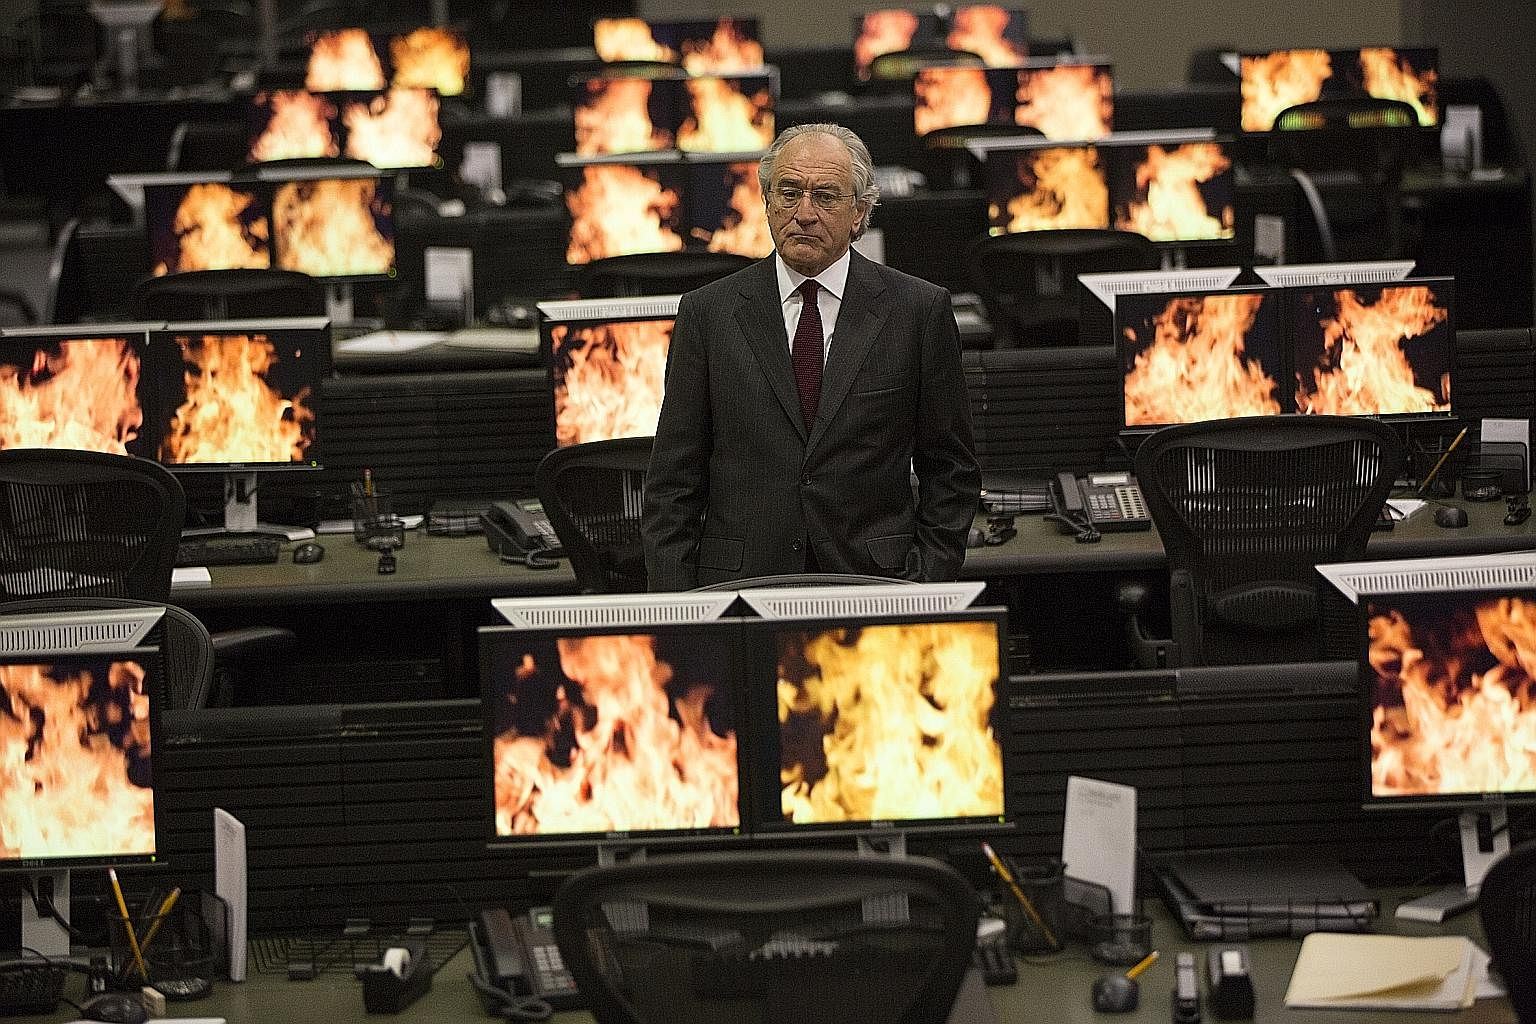 Robert De Niro as Bernie Madoff in The Wizard Of Lies, an HBO movie about the largest Ponzi scheme in American history.